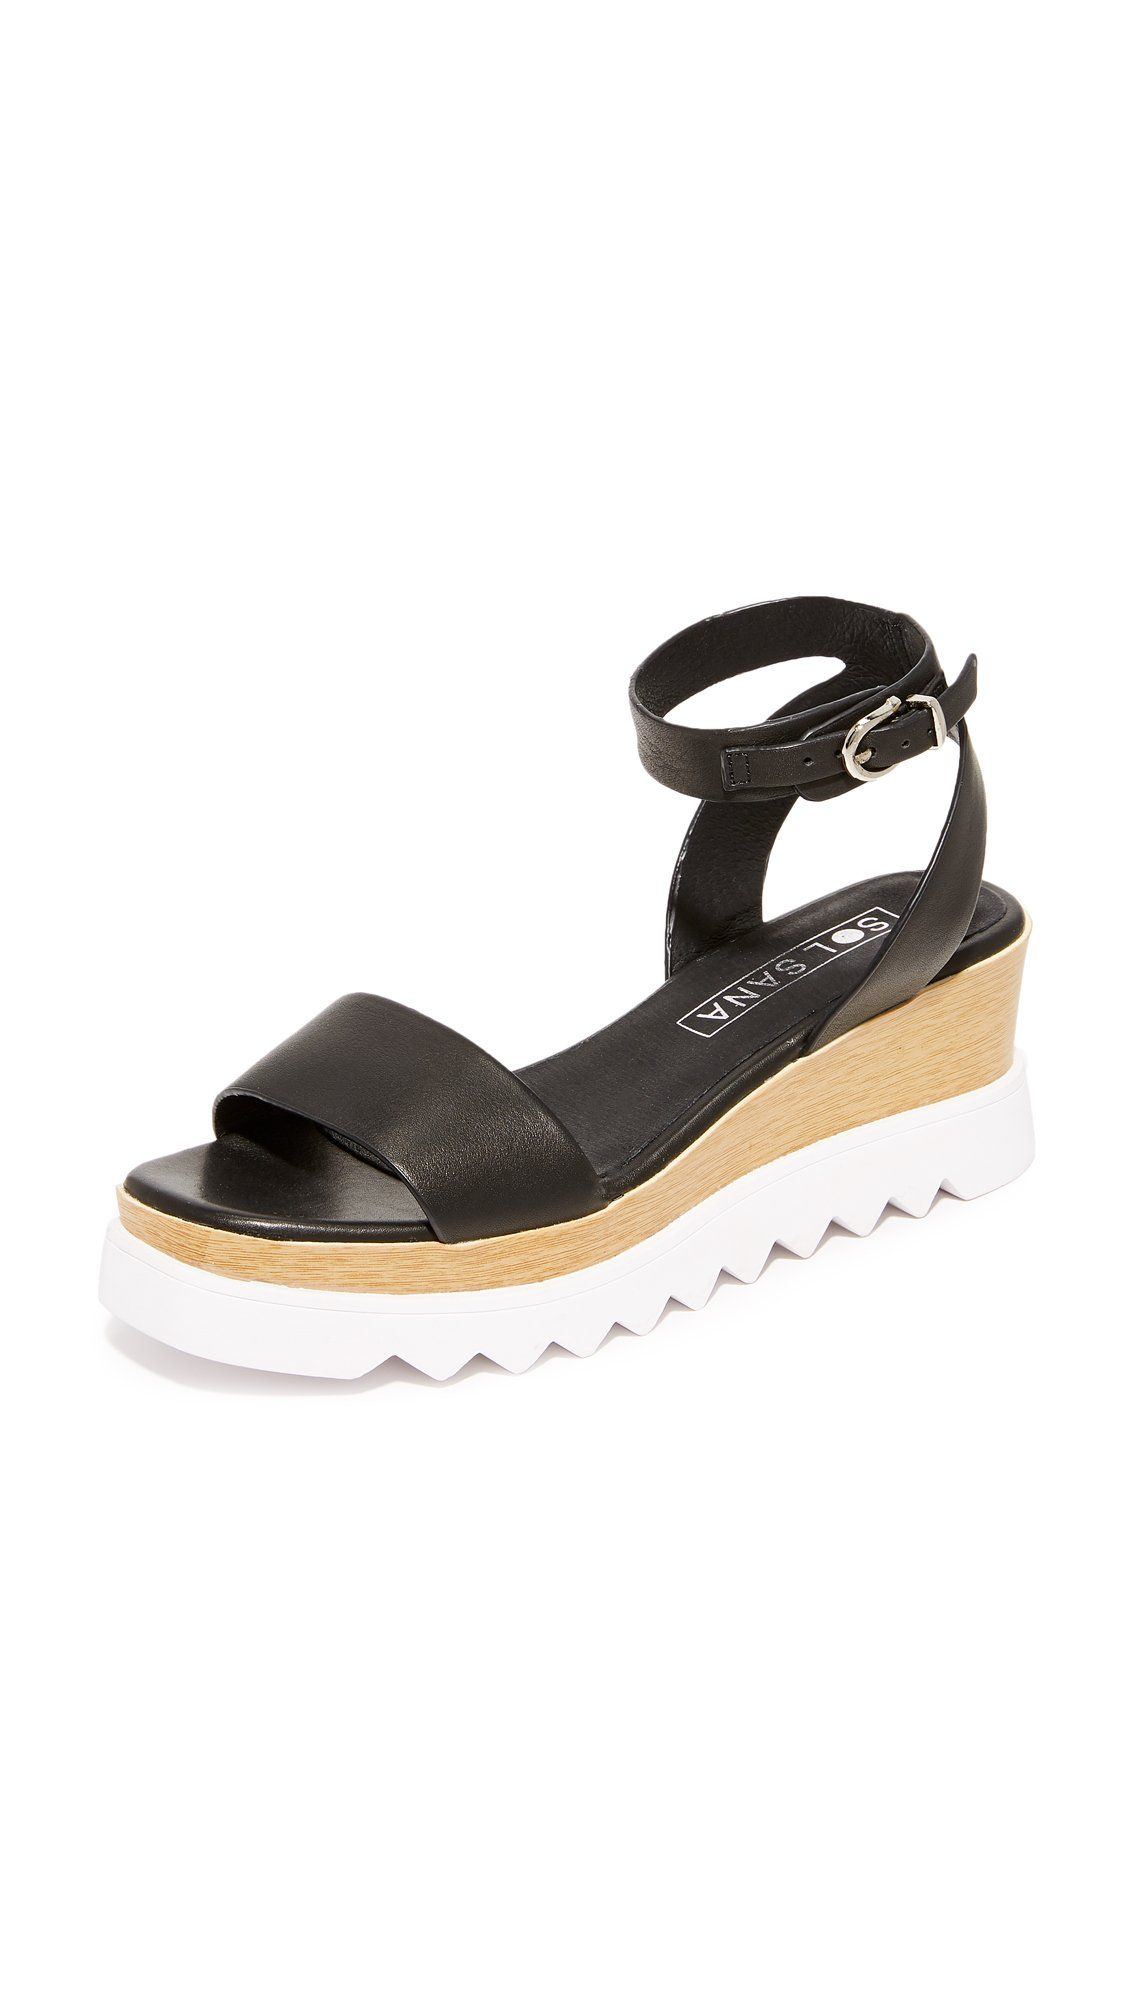 322642e9f0b Sol Sana Women s Tray Wedge Sandals